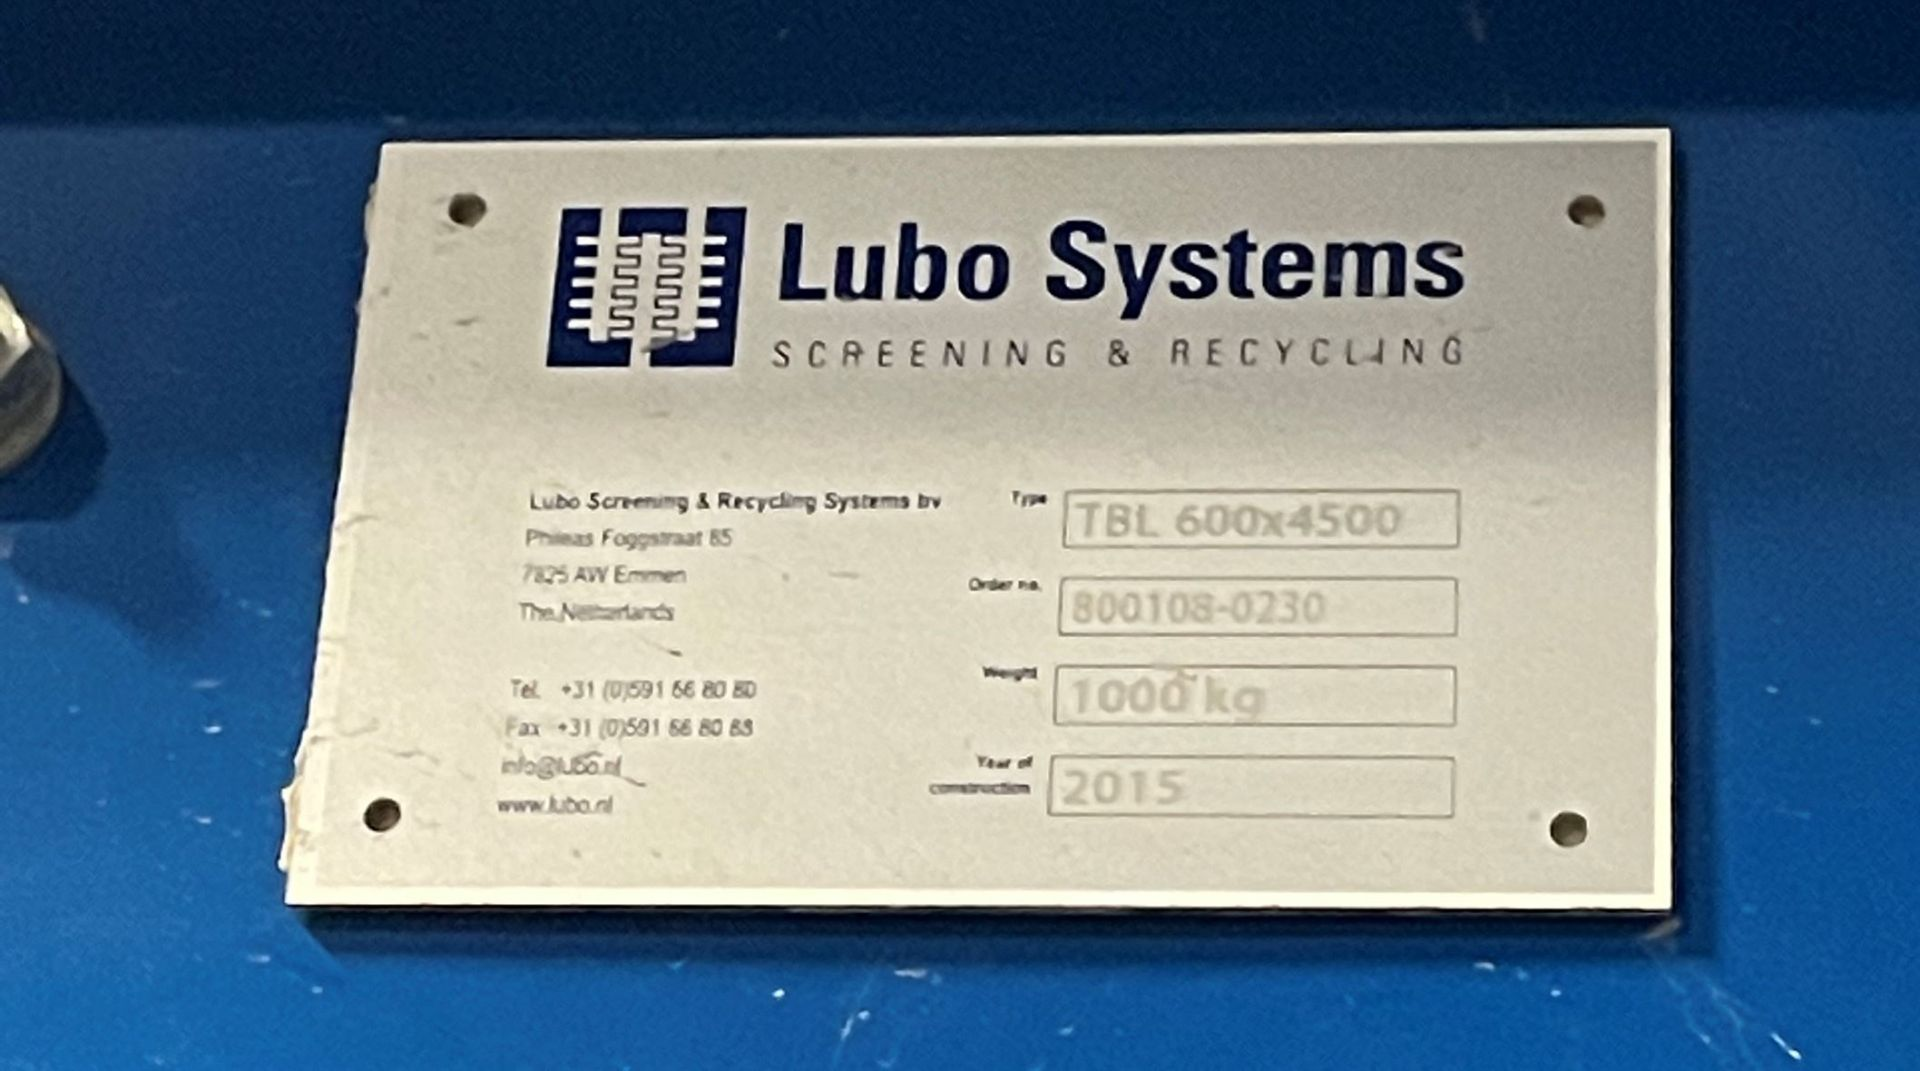 2015 LUBO SYSTEMS TBL 600x4500 Inclined Belt Conveyor, s/n 800108-0230, 600mm x 4500mm, SEW 3.7 kW - Image 5 of 5